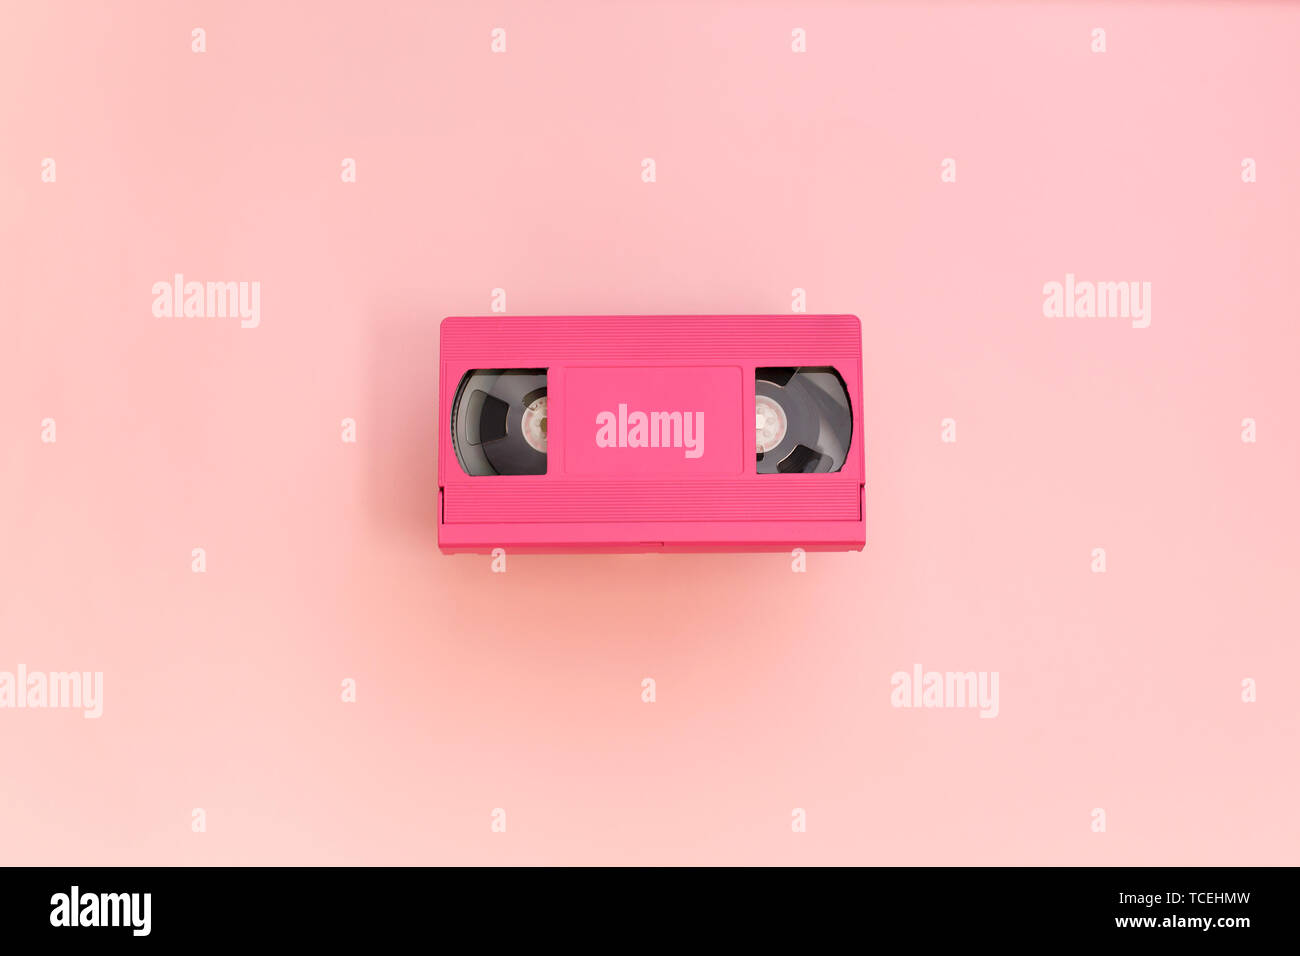 Pink video cassette tape on pink background. - Stock Image